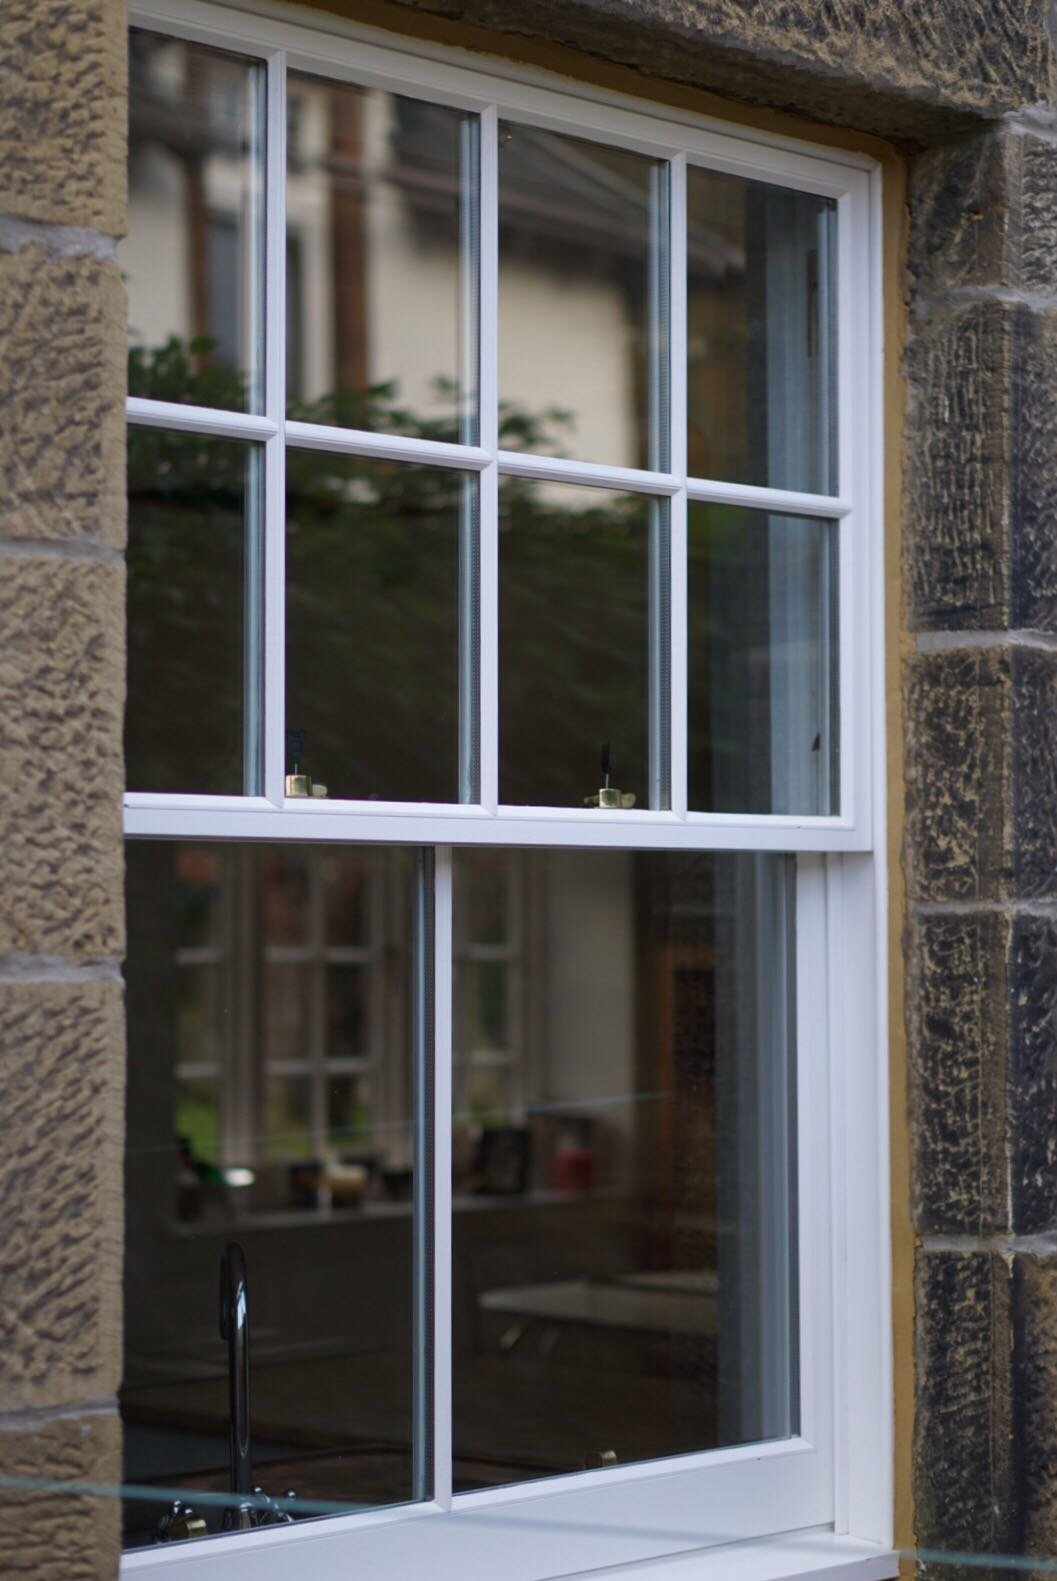 Sash Amp Case Windows Edinburgh Livingston Amp Lothians Uk Jbc